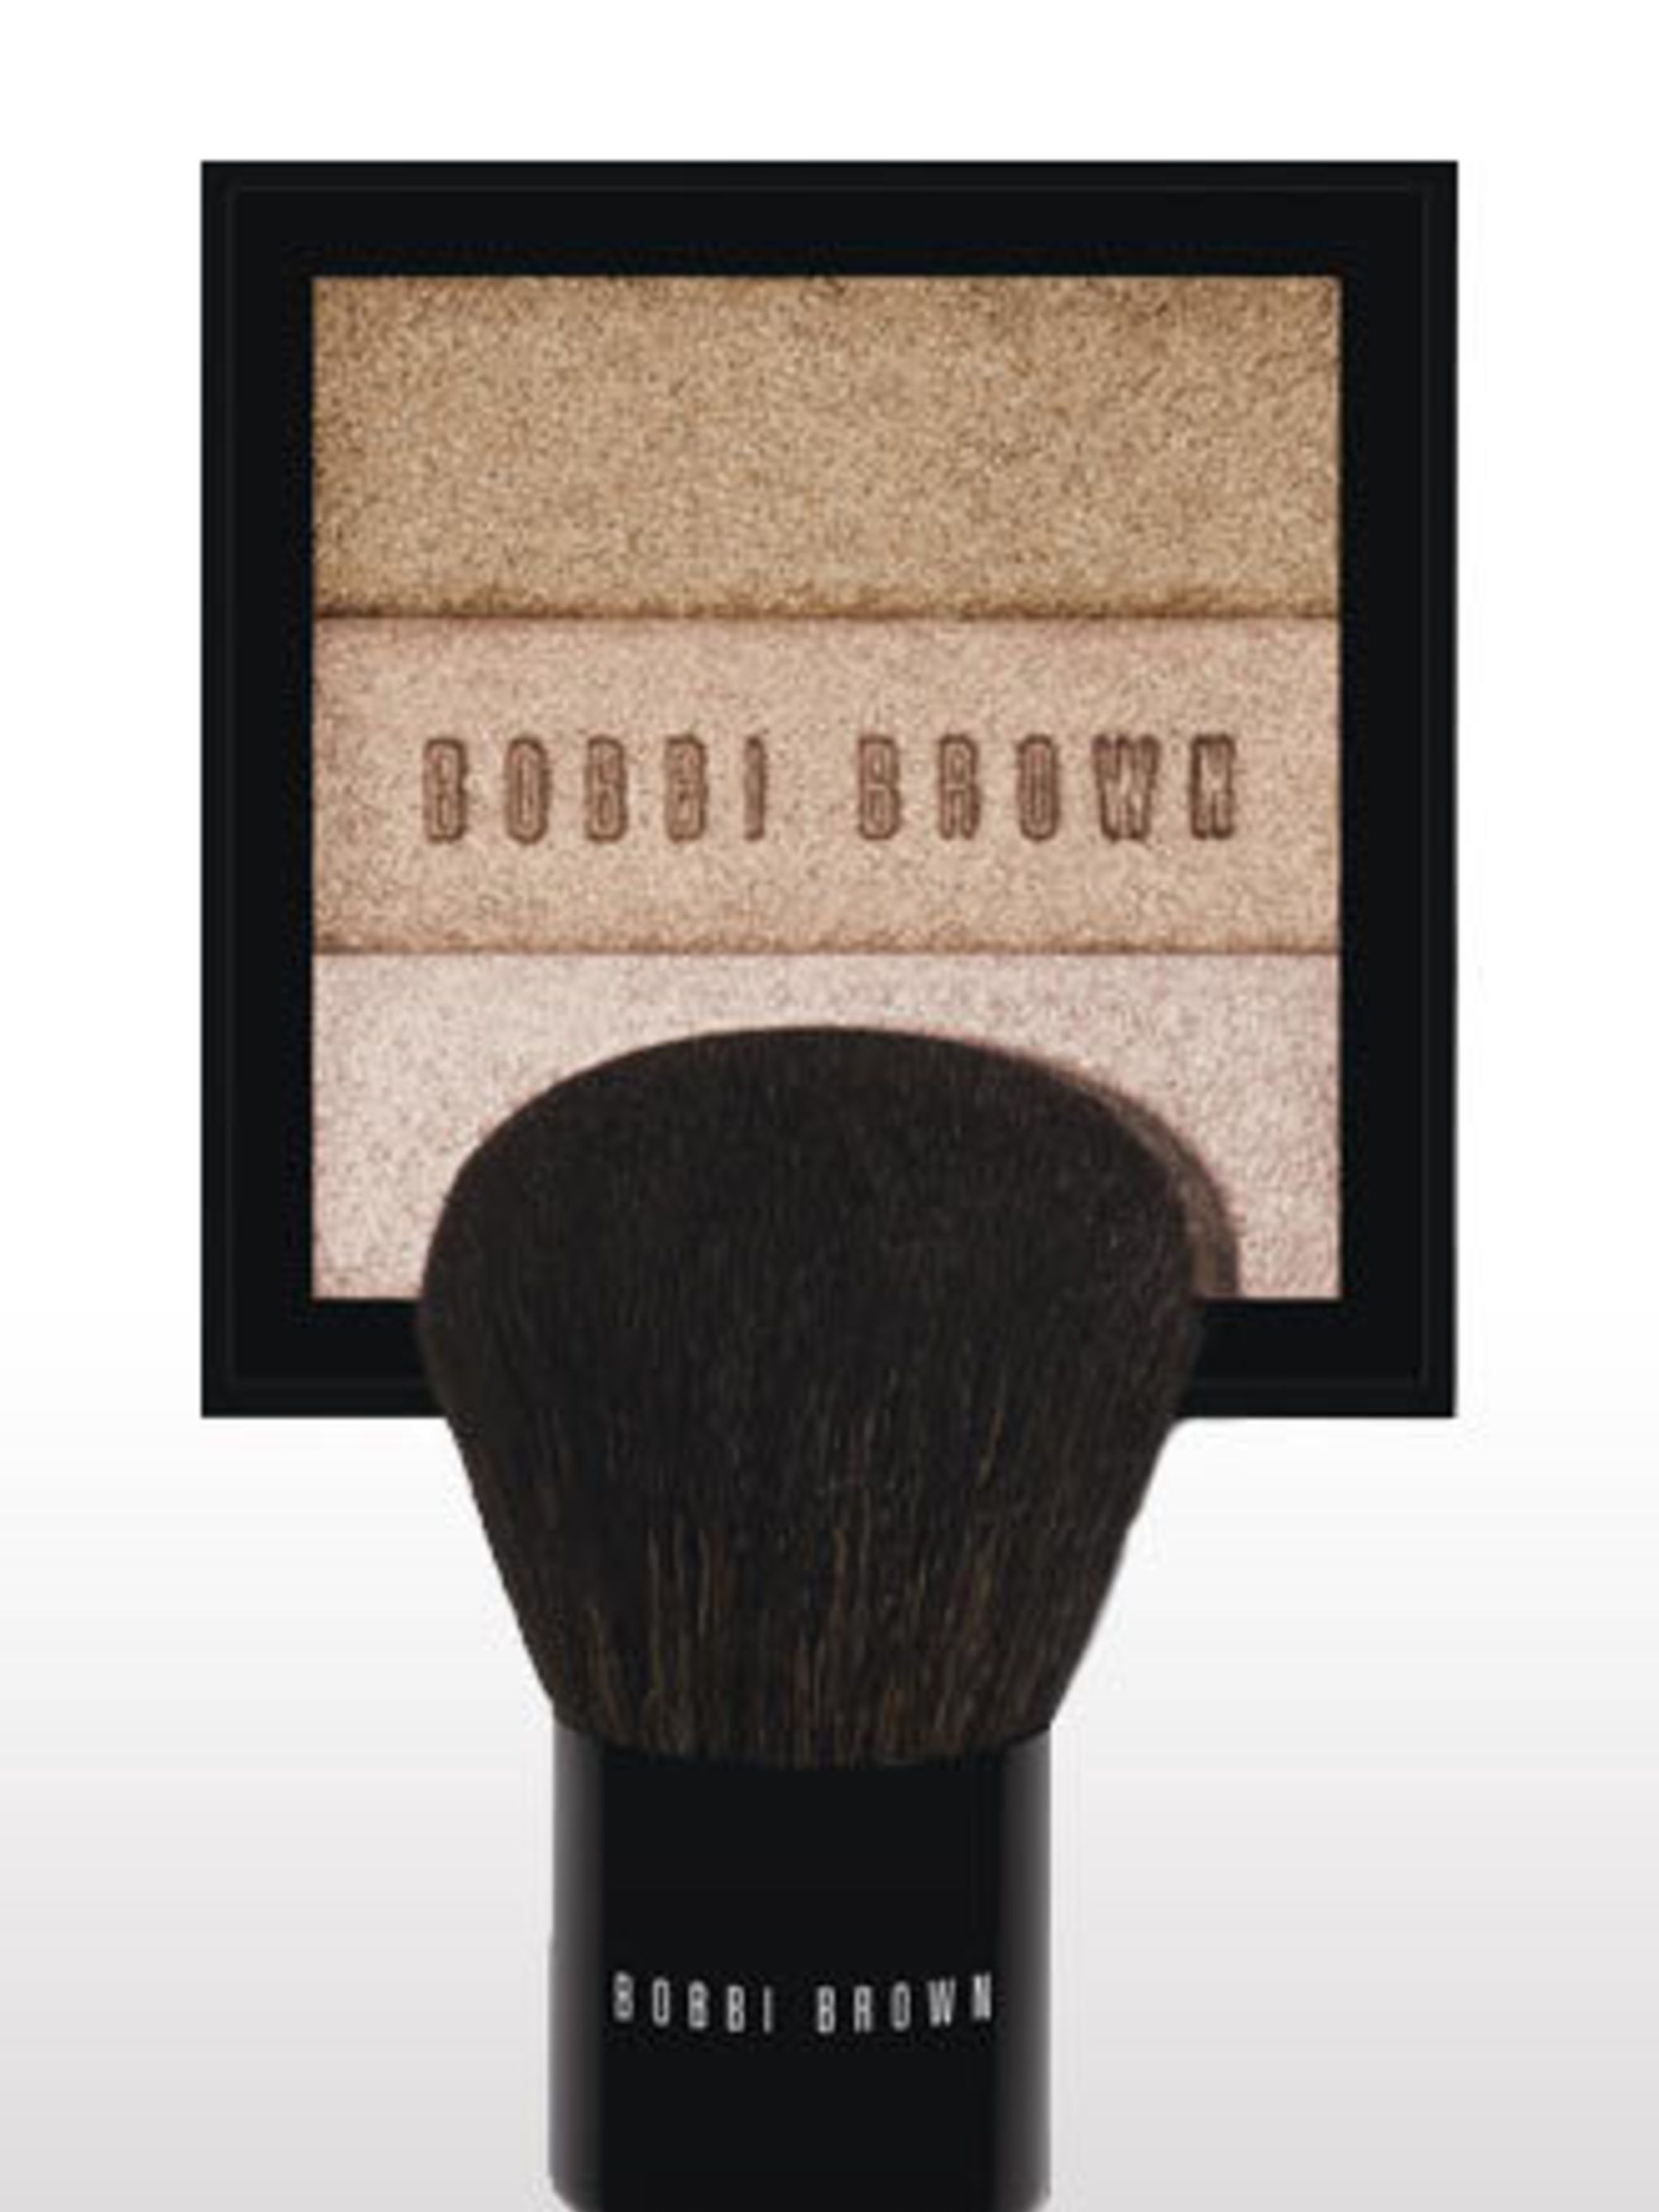 "<p>Body Shimmer Brick, £50, and Body Brush, £50, by <a href=""http://www.bobbibrown.co.uk/home.tmpl"">Bobbi Brown</a>. For stockists call 0870 034 2566.</p><p>A must-pack product for summer holidays, this versatile bronzer can be swept down legs, arms and d"